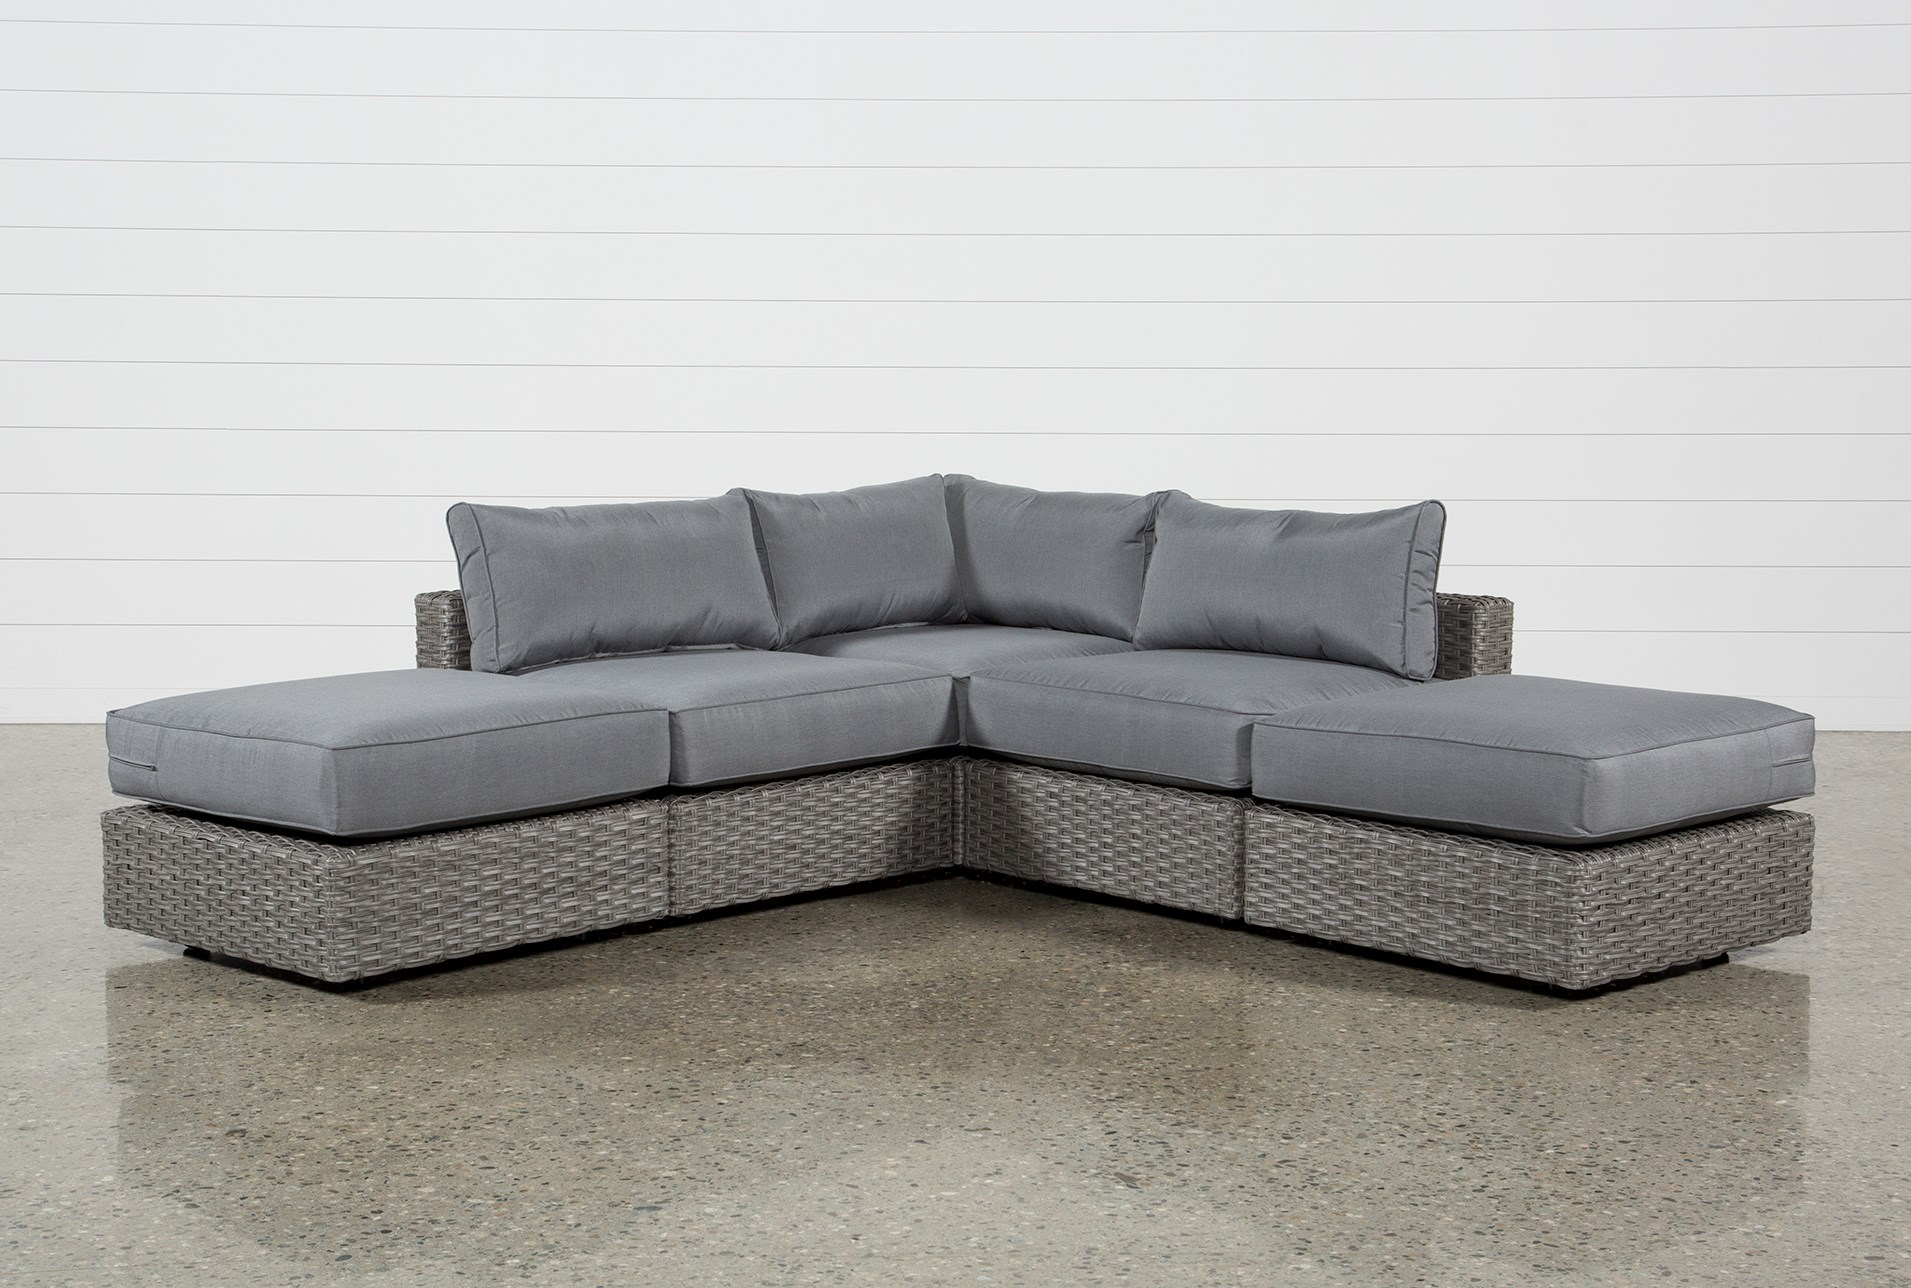 Outdoor Koro 5 Piece Sectional W/2 Ottomans | Living Spaces